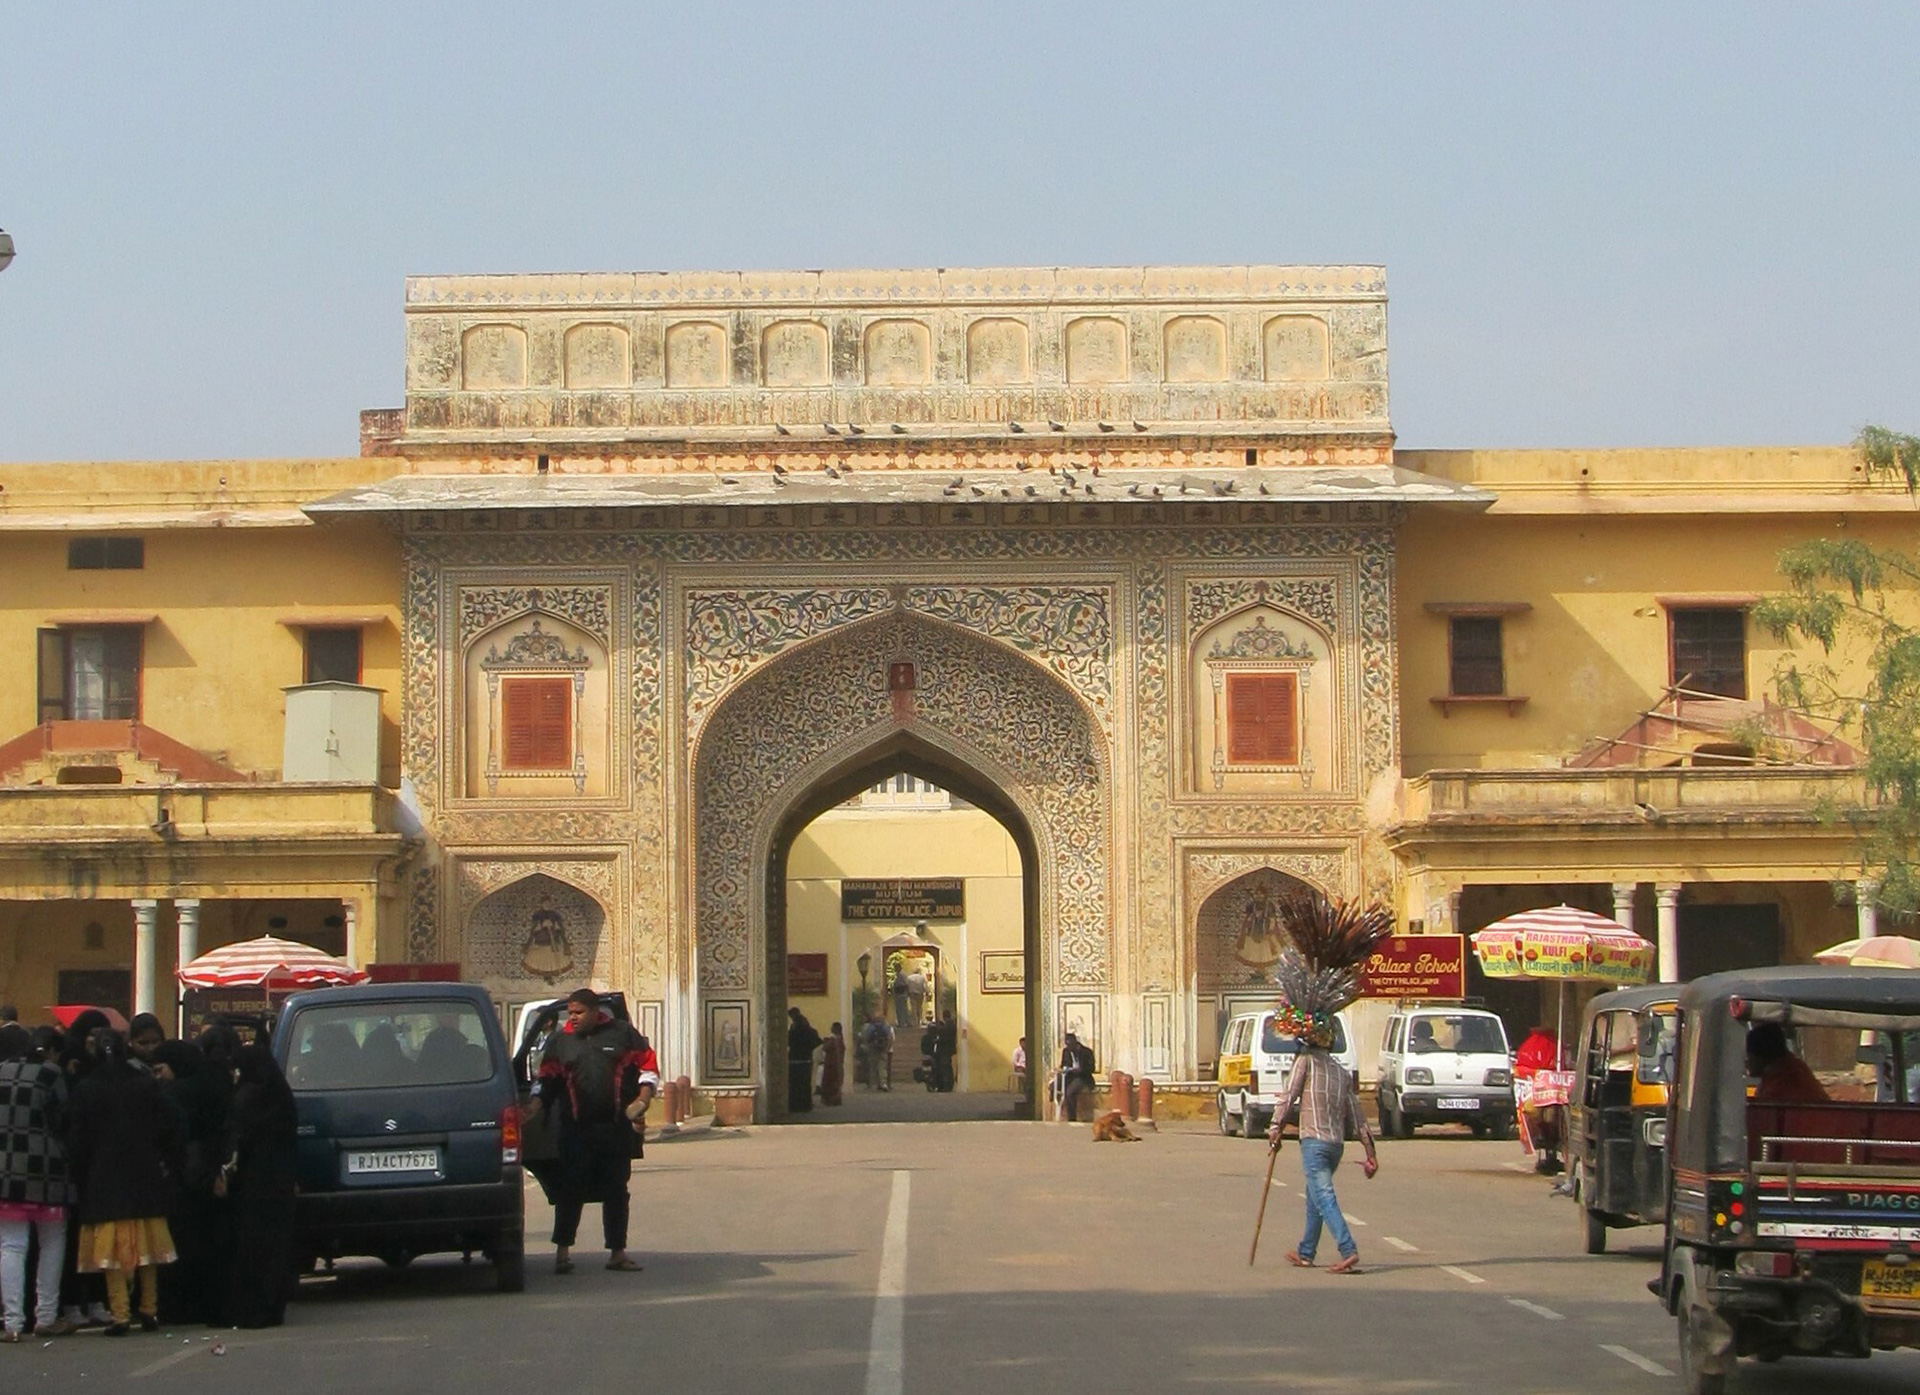 The entrance to the City Palace complex| Jaipur | UNESCO World Heritage Site | STIR